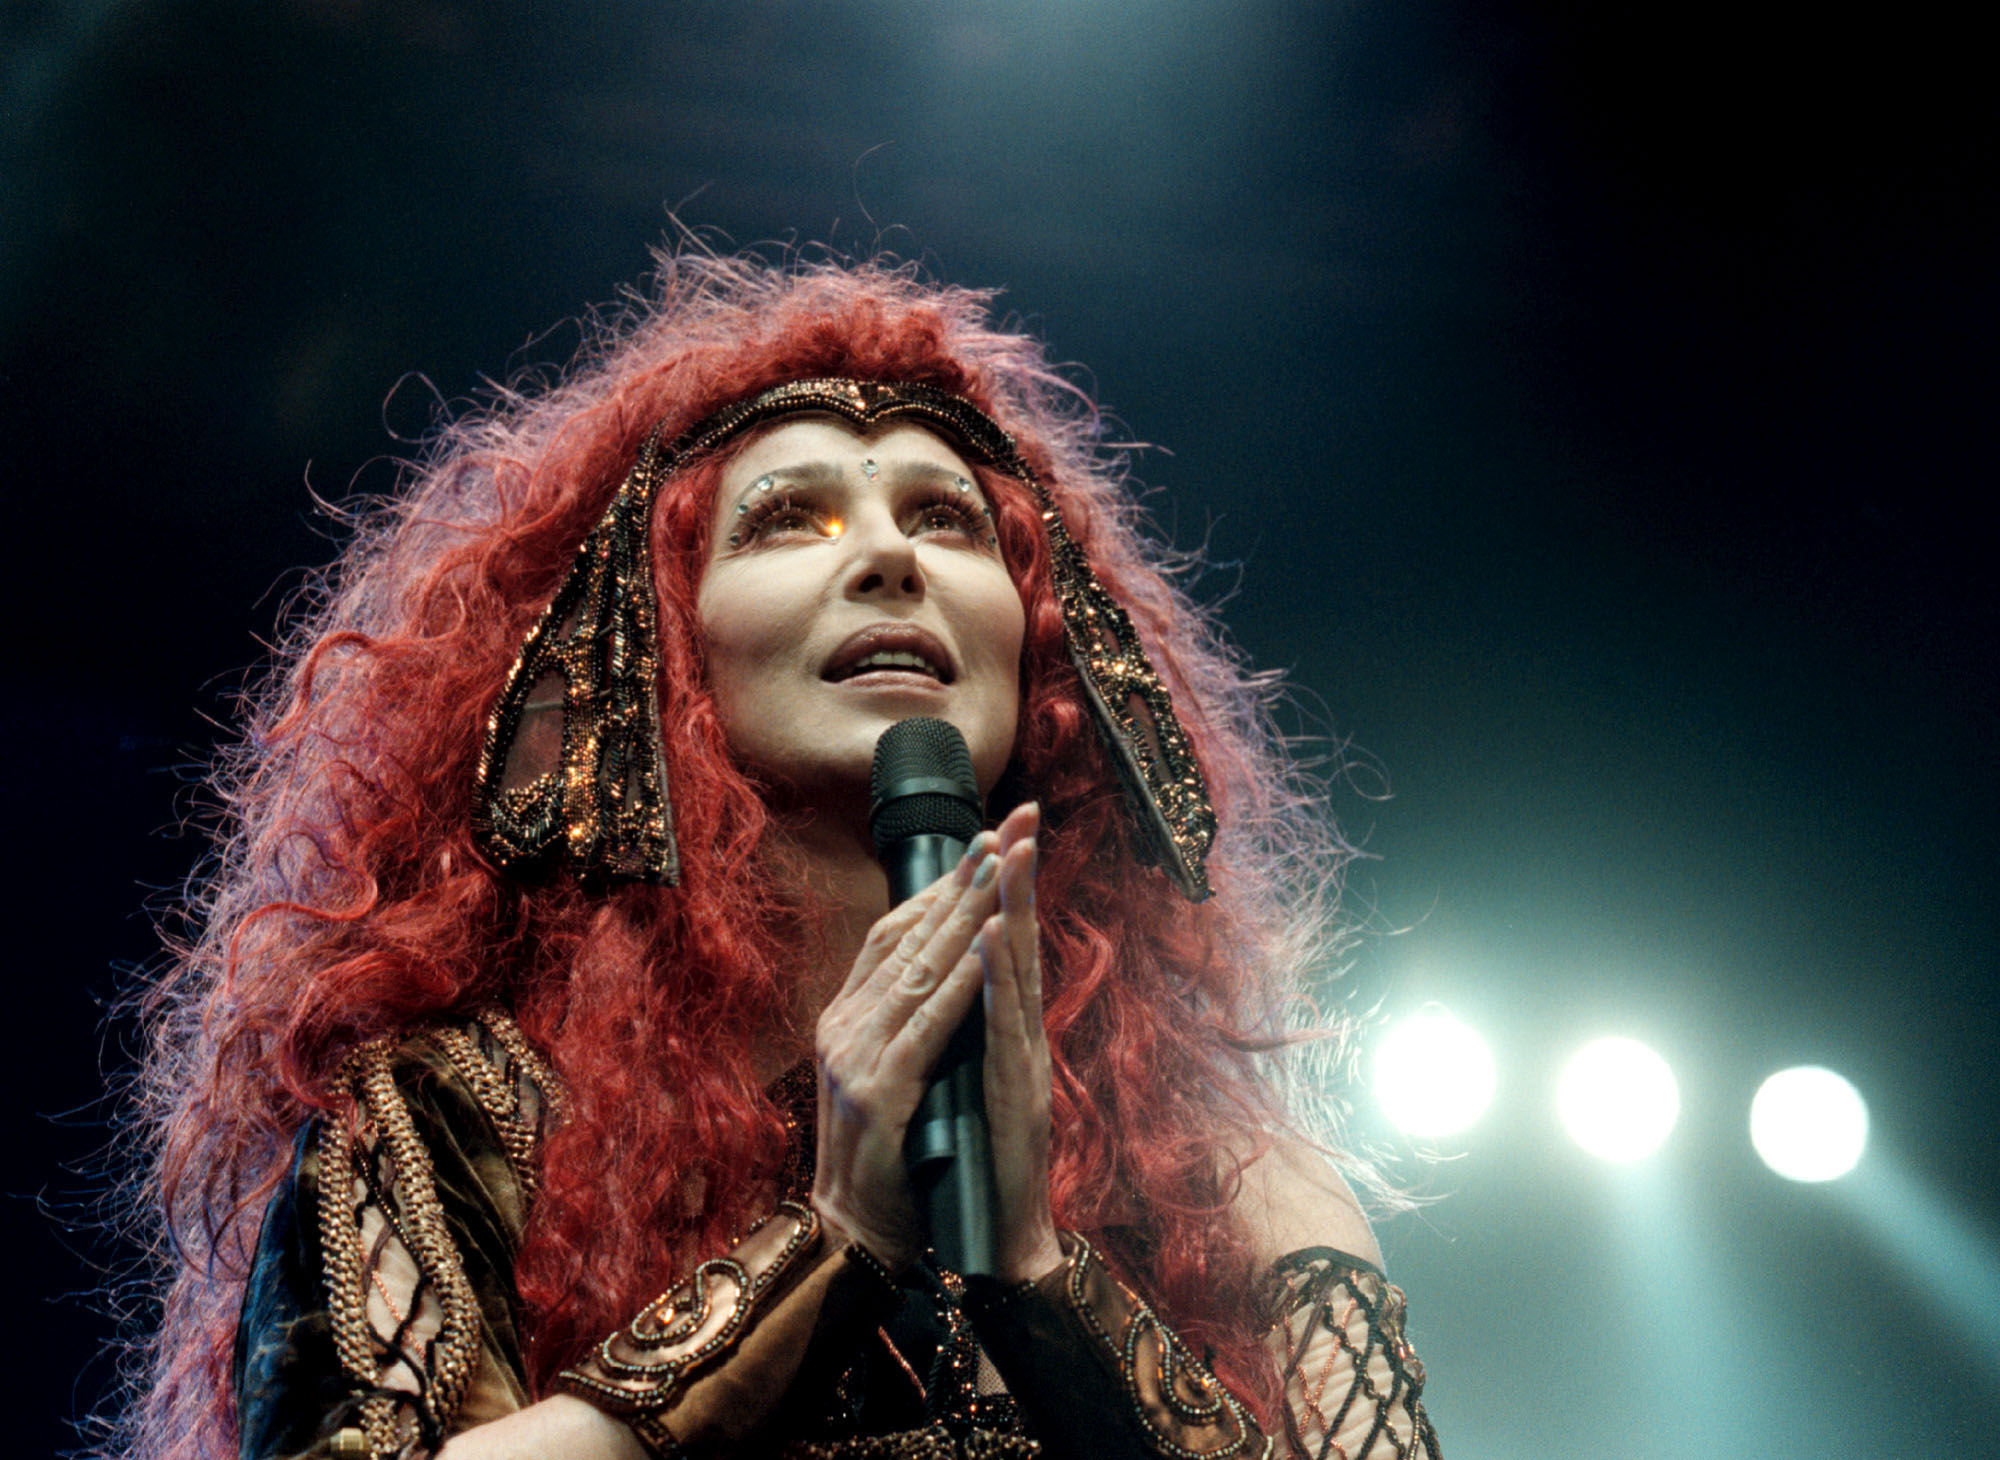 Cher wigs out at Stockholm's Globe Arena, 1999. (Photo: Tobias Roslund/Getty Images)